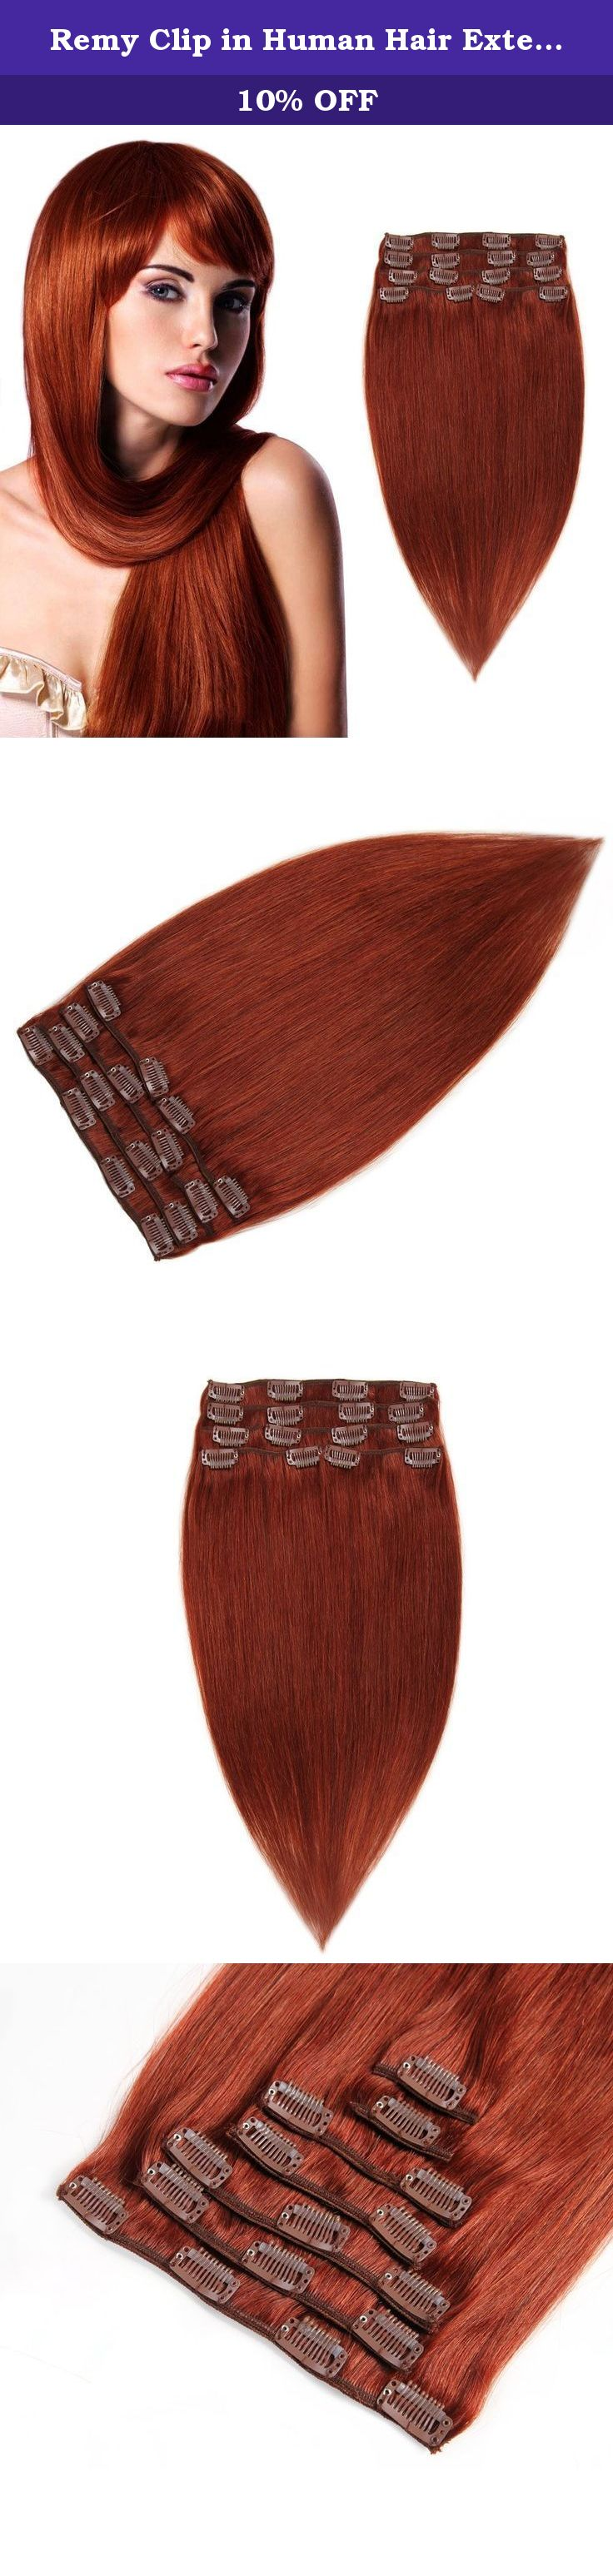 Remy clip in human hair extensions 6a grade double weft curtain remy clip in human hair extensions 6a grade double weft curtain hair 100g 8pcsset pmusecretfo Choice Image